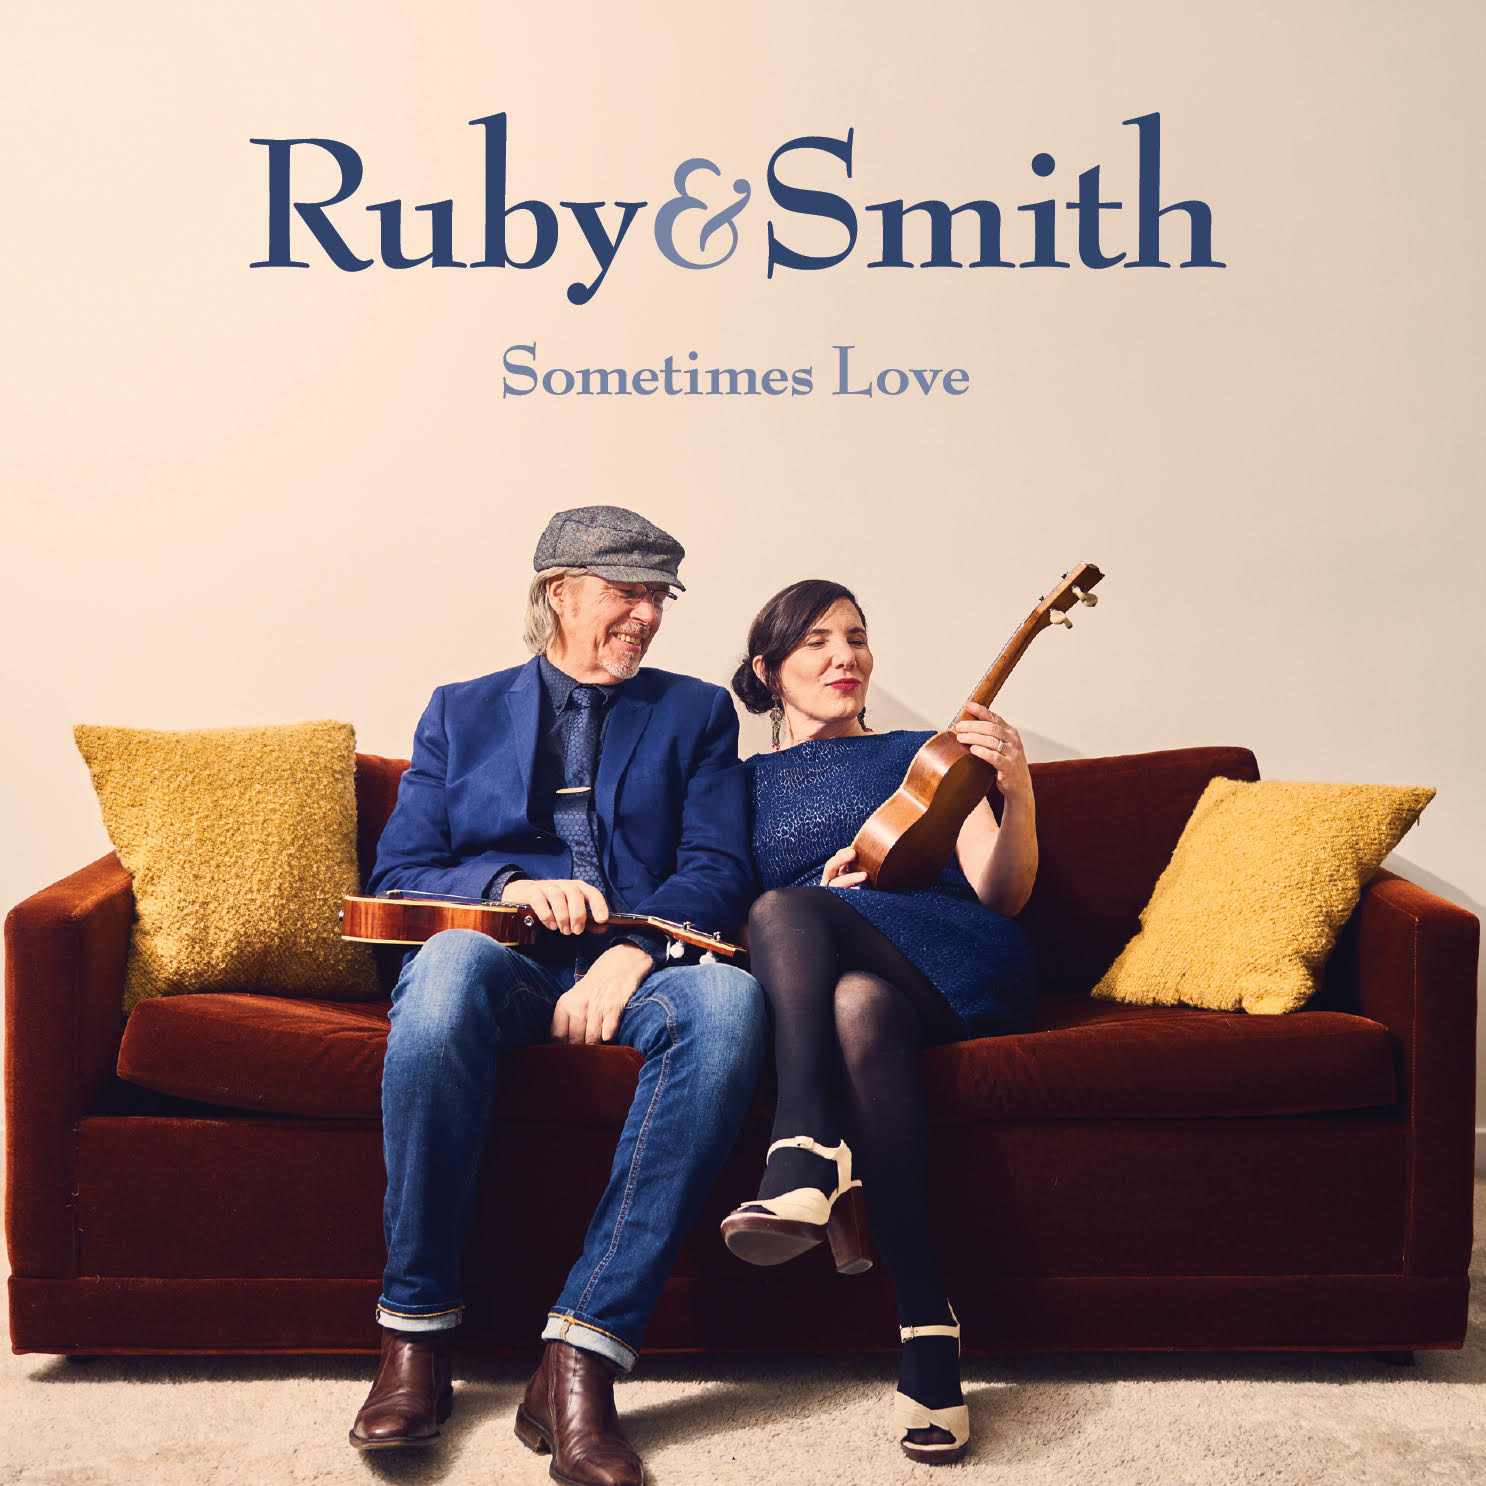 New Music Coming October 27th - Ruby & Smith are Vancouver's First Lady and Duke of Uke, Daphne Roubini and Andrew Smith, also known across Canada and beyond for their vintage jazz band Black Gardenia and Ruby's Ukes, the World's largest Ukulele School outside Hawaii. Sometimes Love is the new album coming this fall from Ruby & Smith.Album Release Concert at The Anza Club!